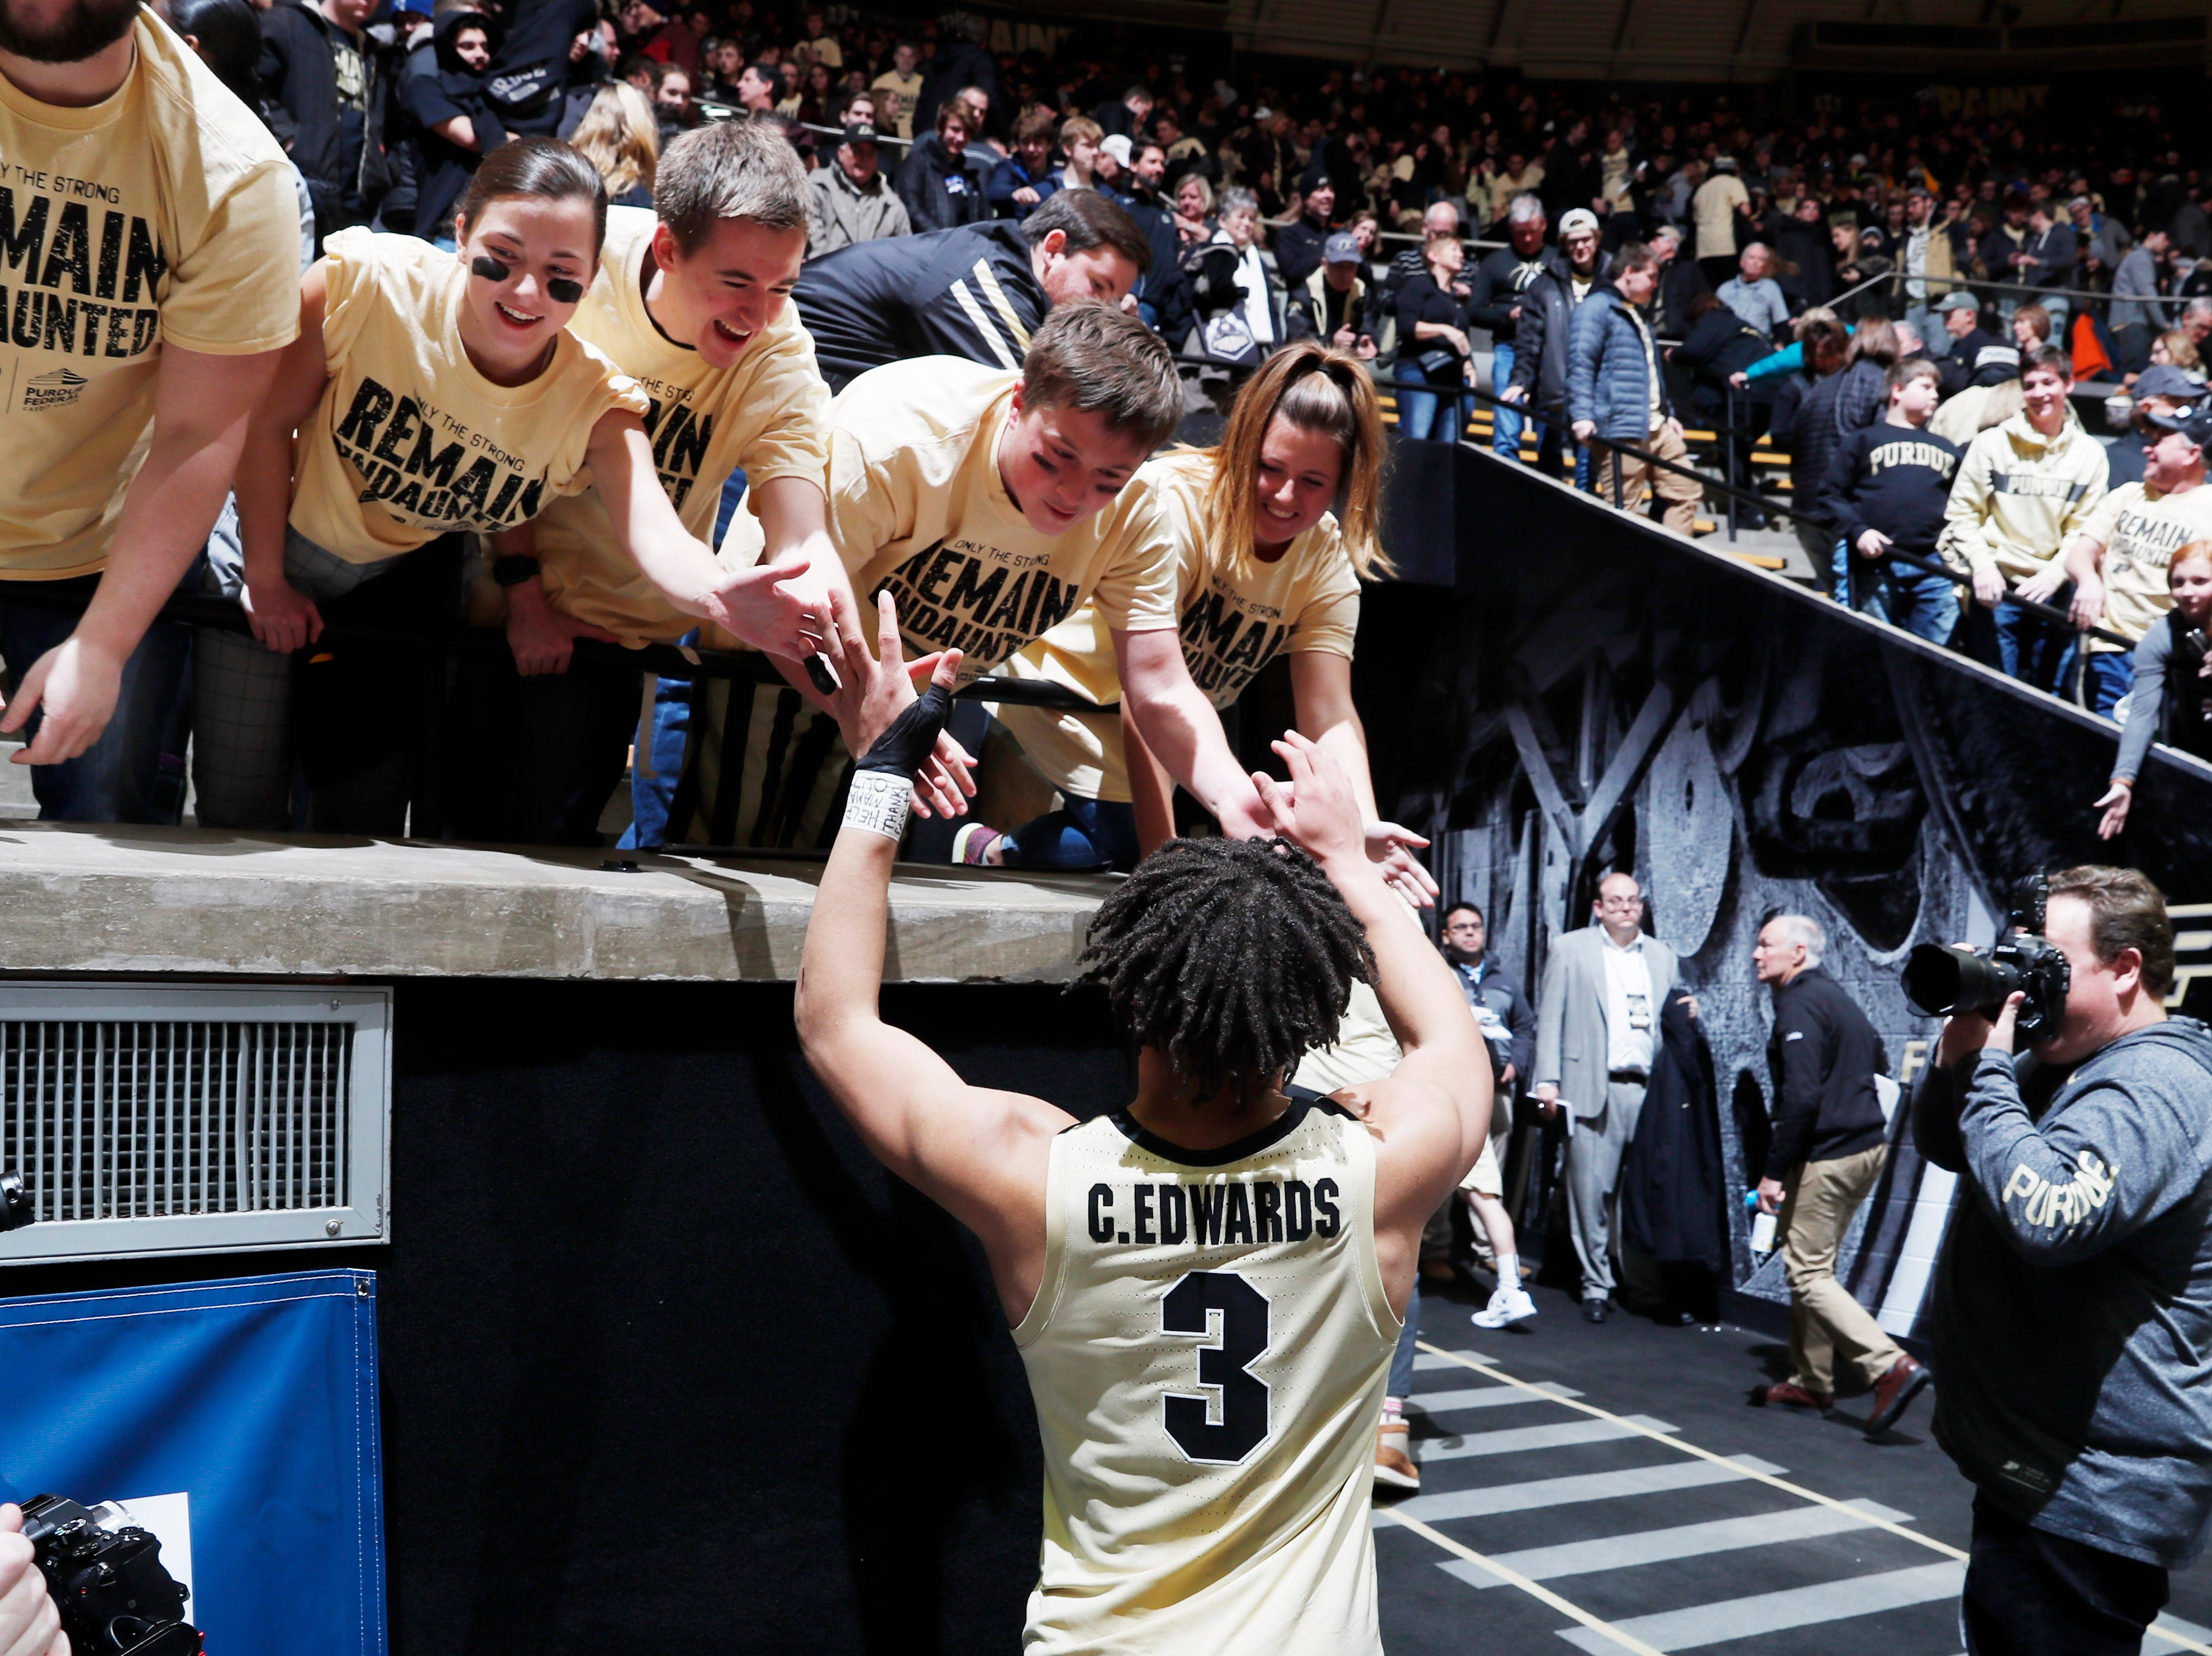 Purdue Boilermakers guard Carsen Edwards (3) celebrates with fans in the stands after defeating the Michigan State Spartans at Mackey Arena.